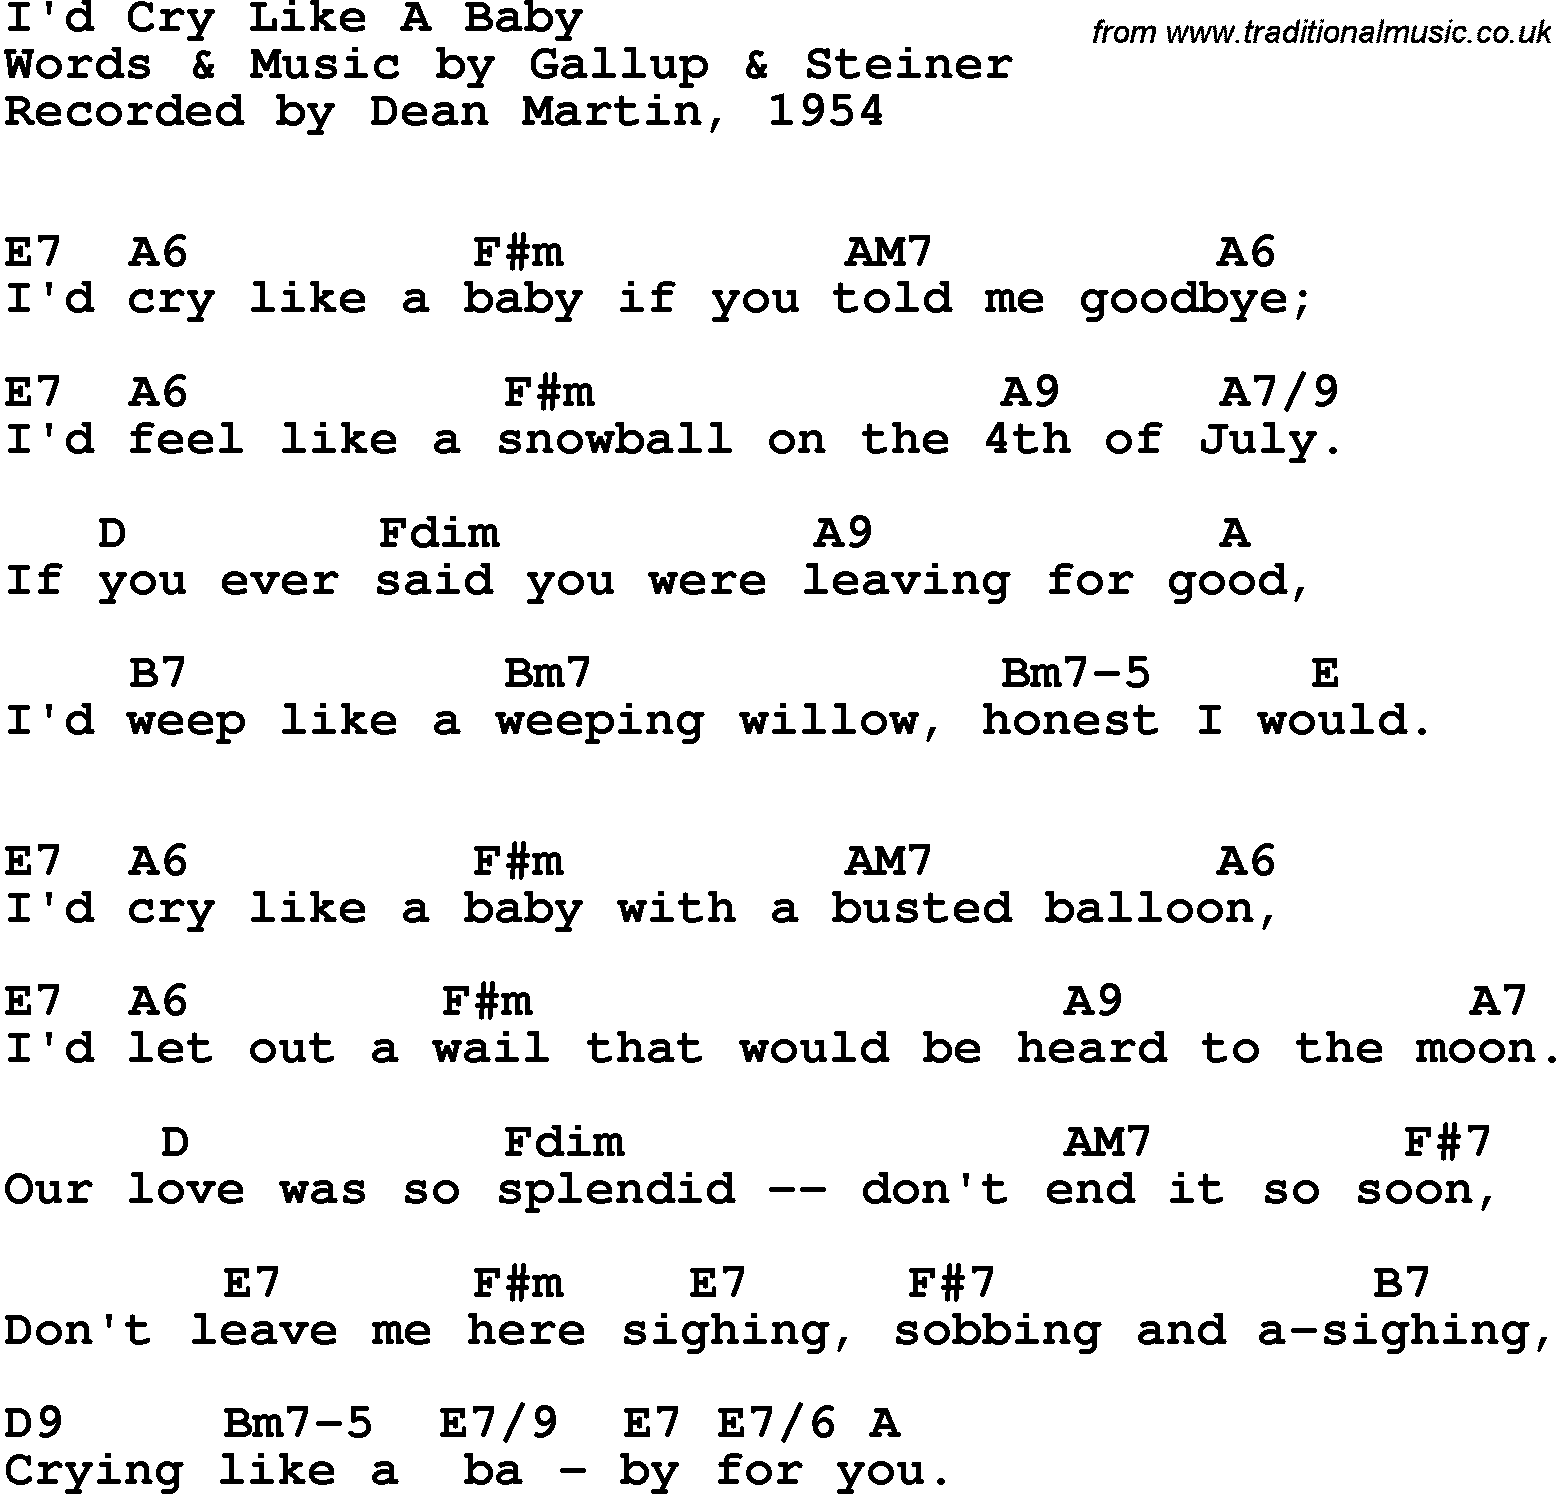 Song Lyrics With Guitar Chords For Id Cry Like A Baby Dean Martin